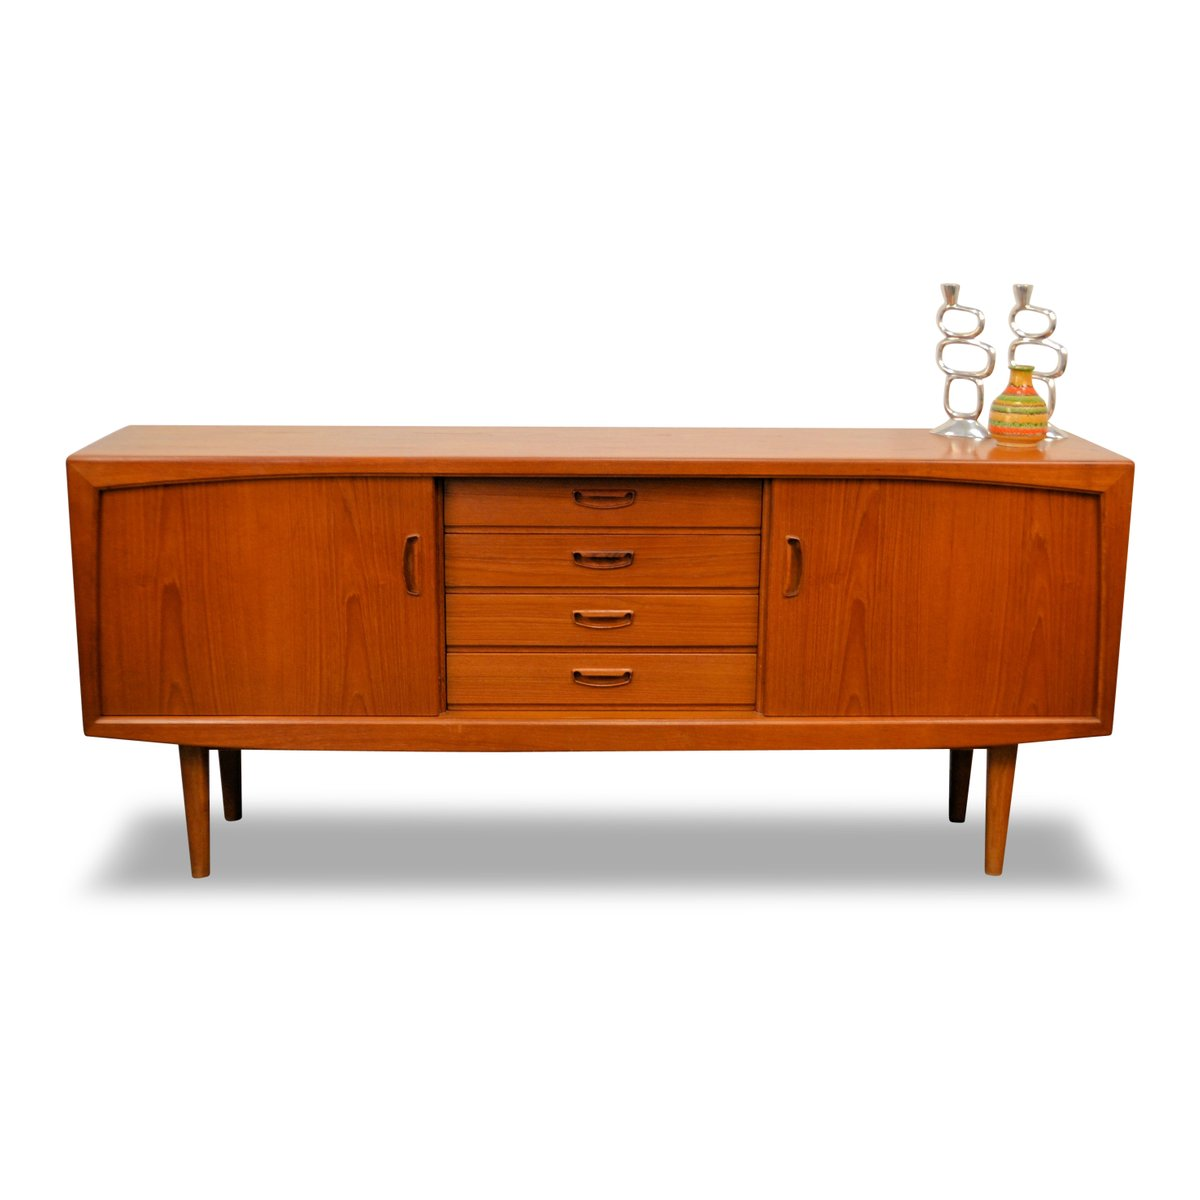 mid century danish teak sideboard with sliding doors drawers for sale at pamono. Black Bedroom Furniture Sets. Home Design Ideas